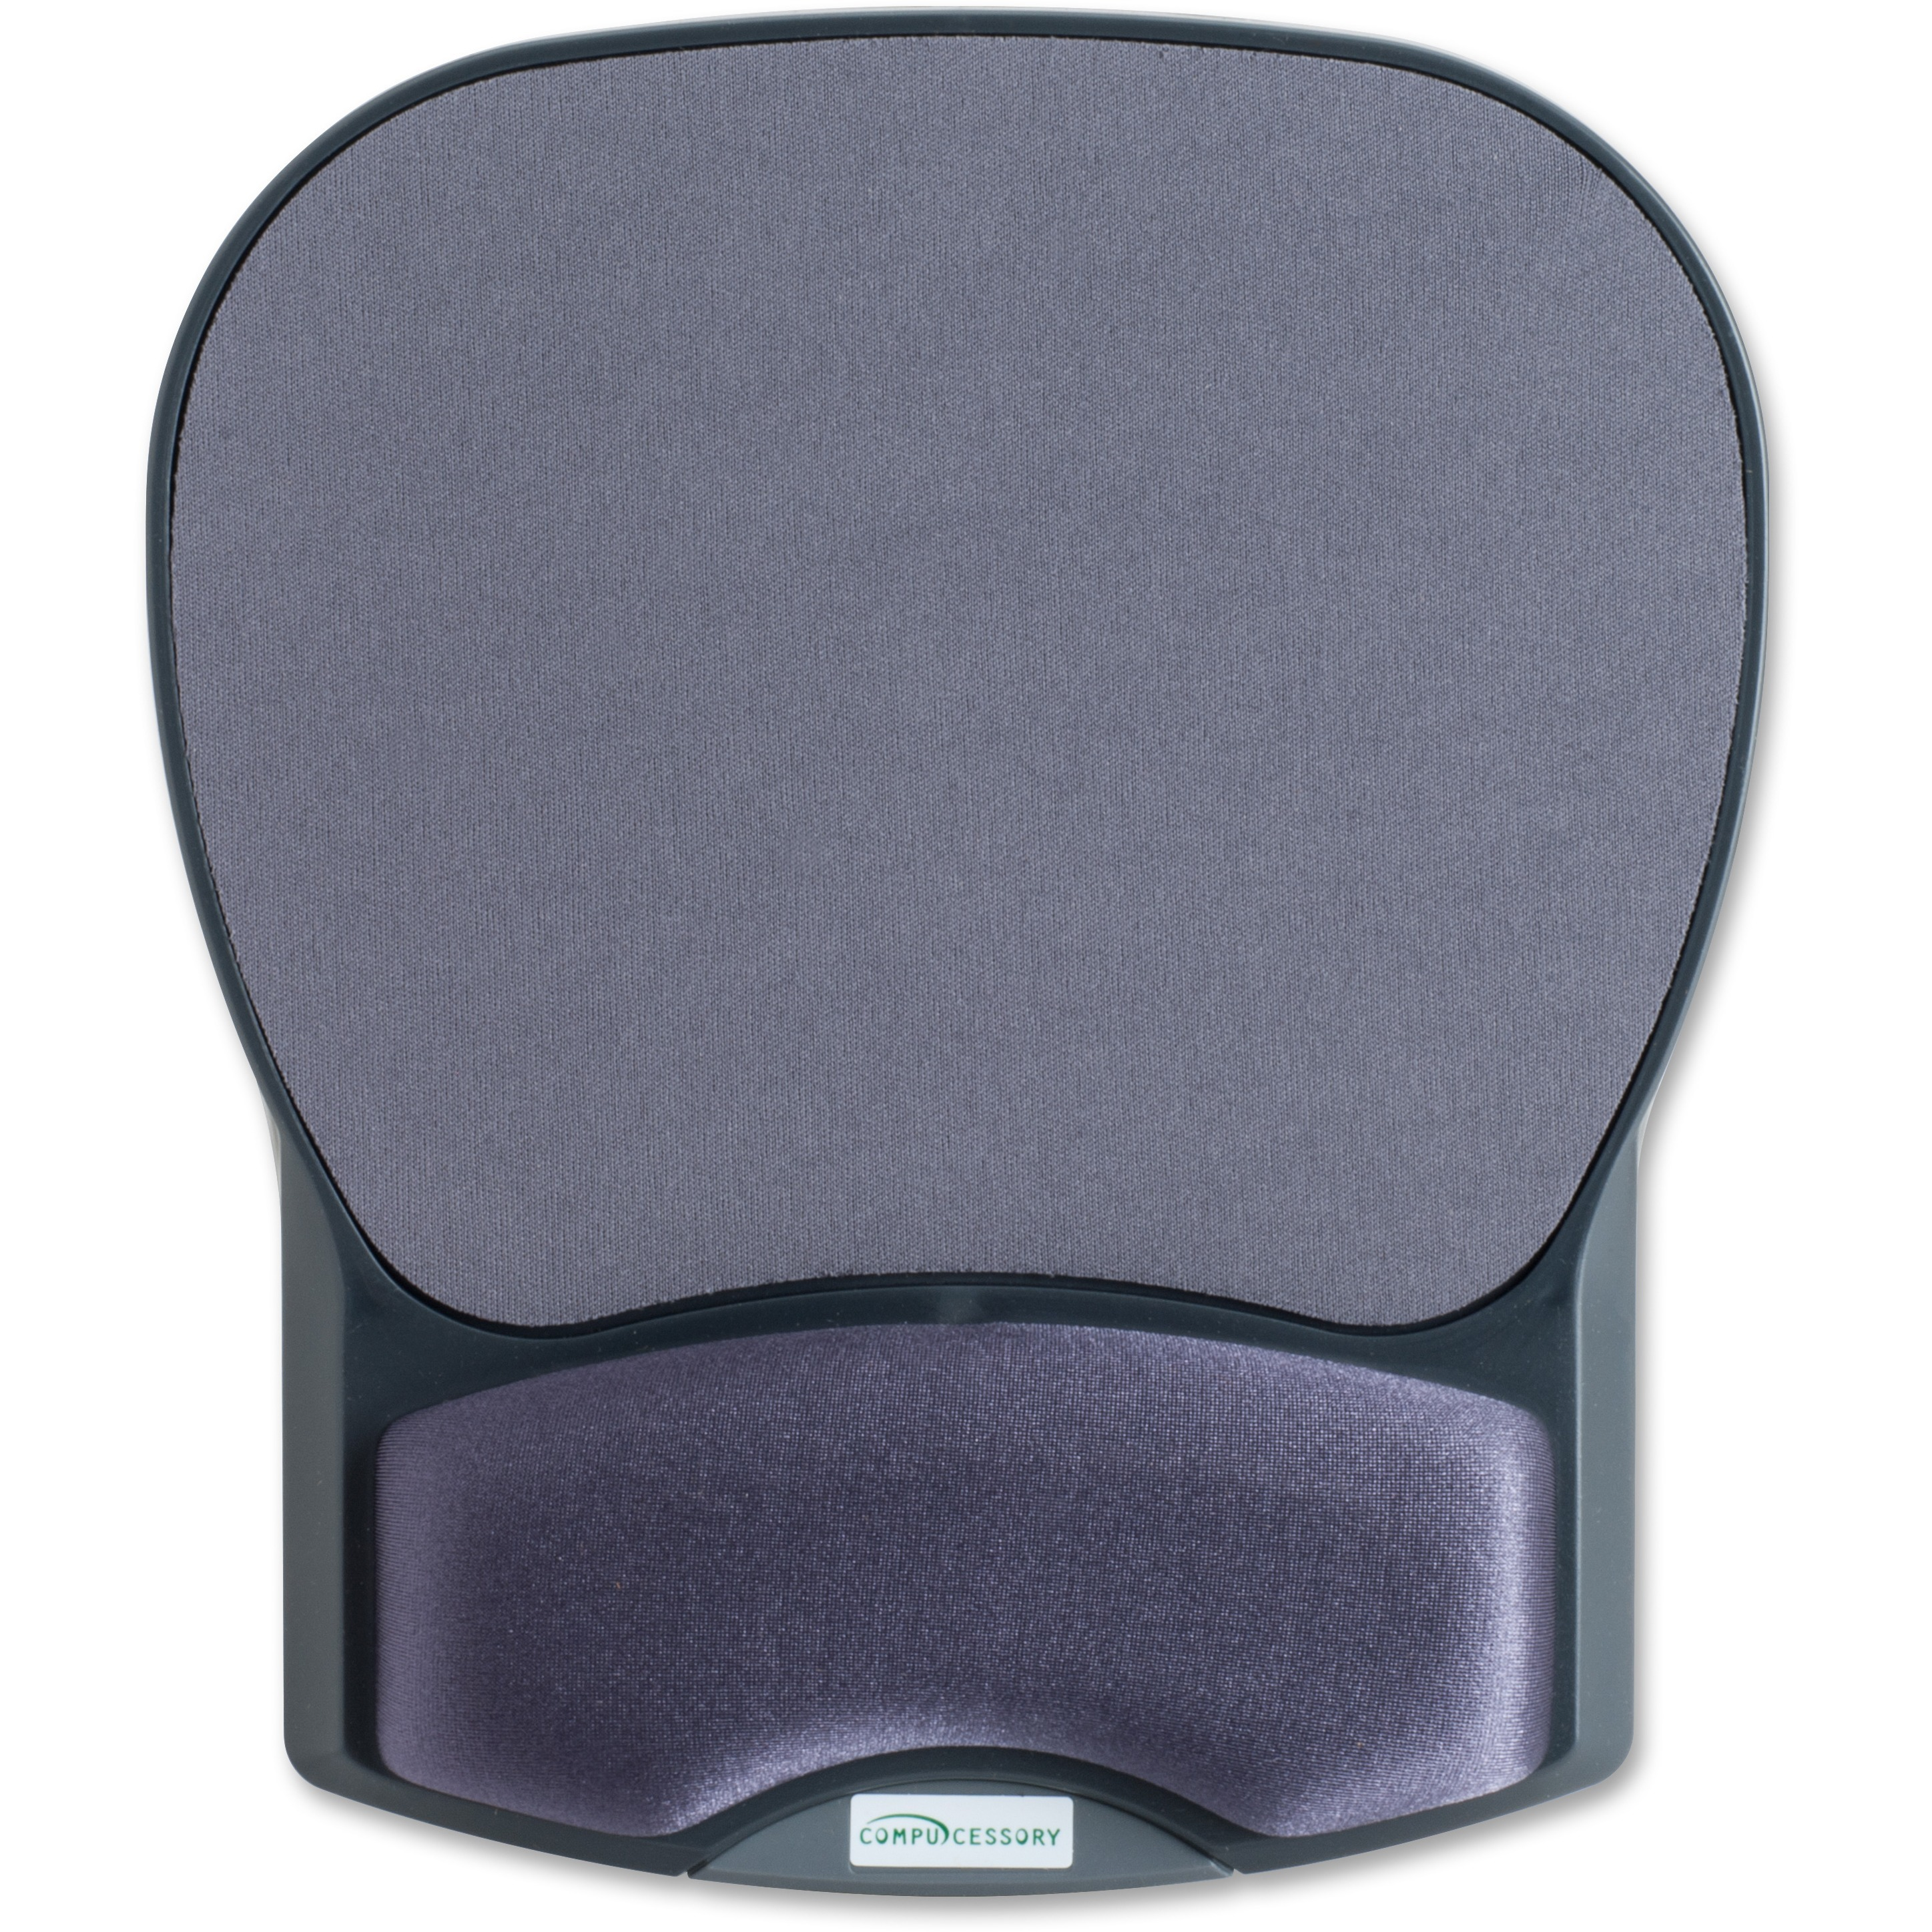 Compucessory, CCS55302, Gel Wrist Rest with Mouse Pads, 1, Charcoal